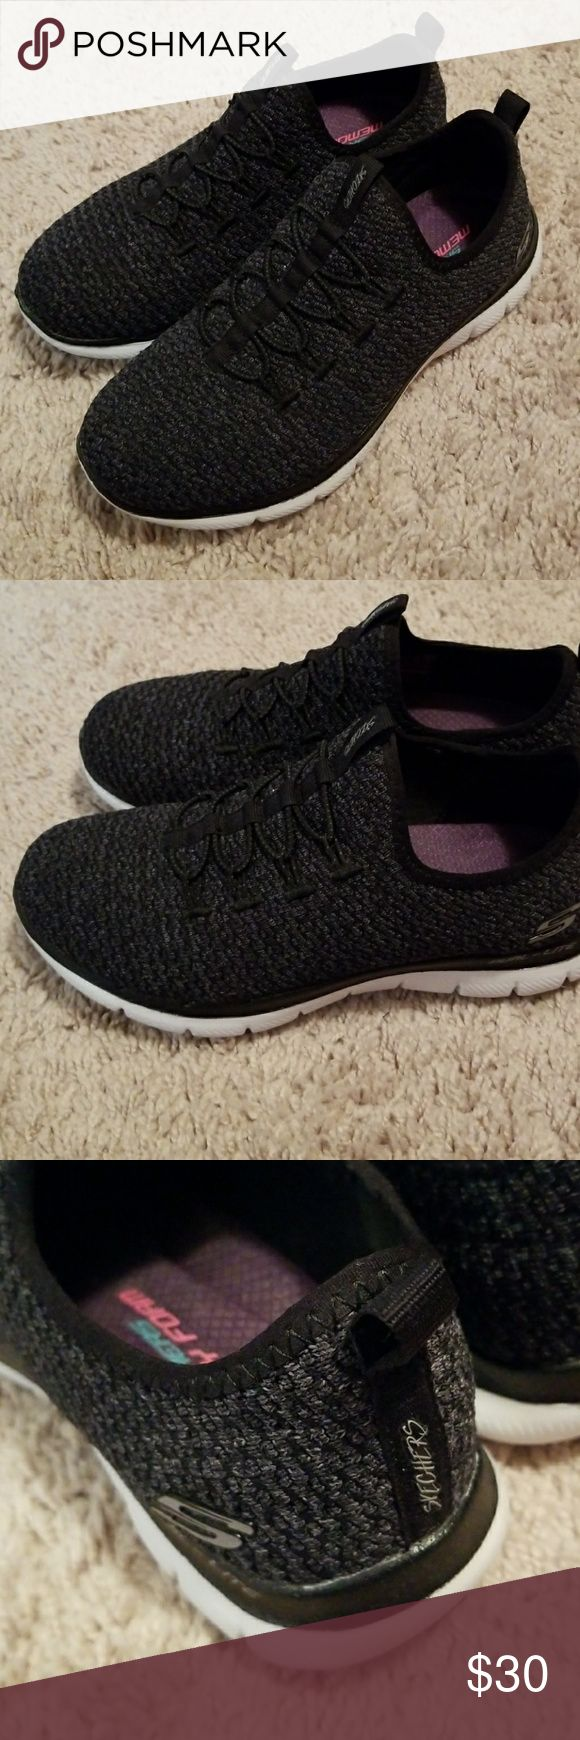 Slip on Sneaker Skechers Slip on bungee cord memory foam sneakers.  Like new condition , worn maybe twice, very soft and comfortable. Smoke Free Environment. Skechers Shoes Athletic Shoes